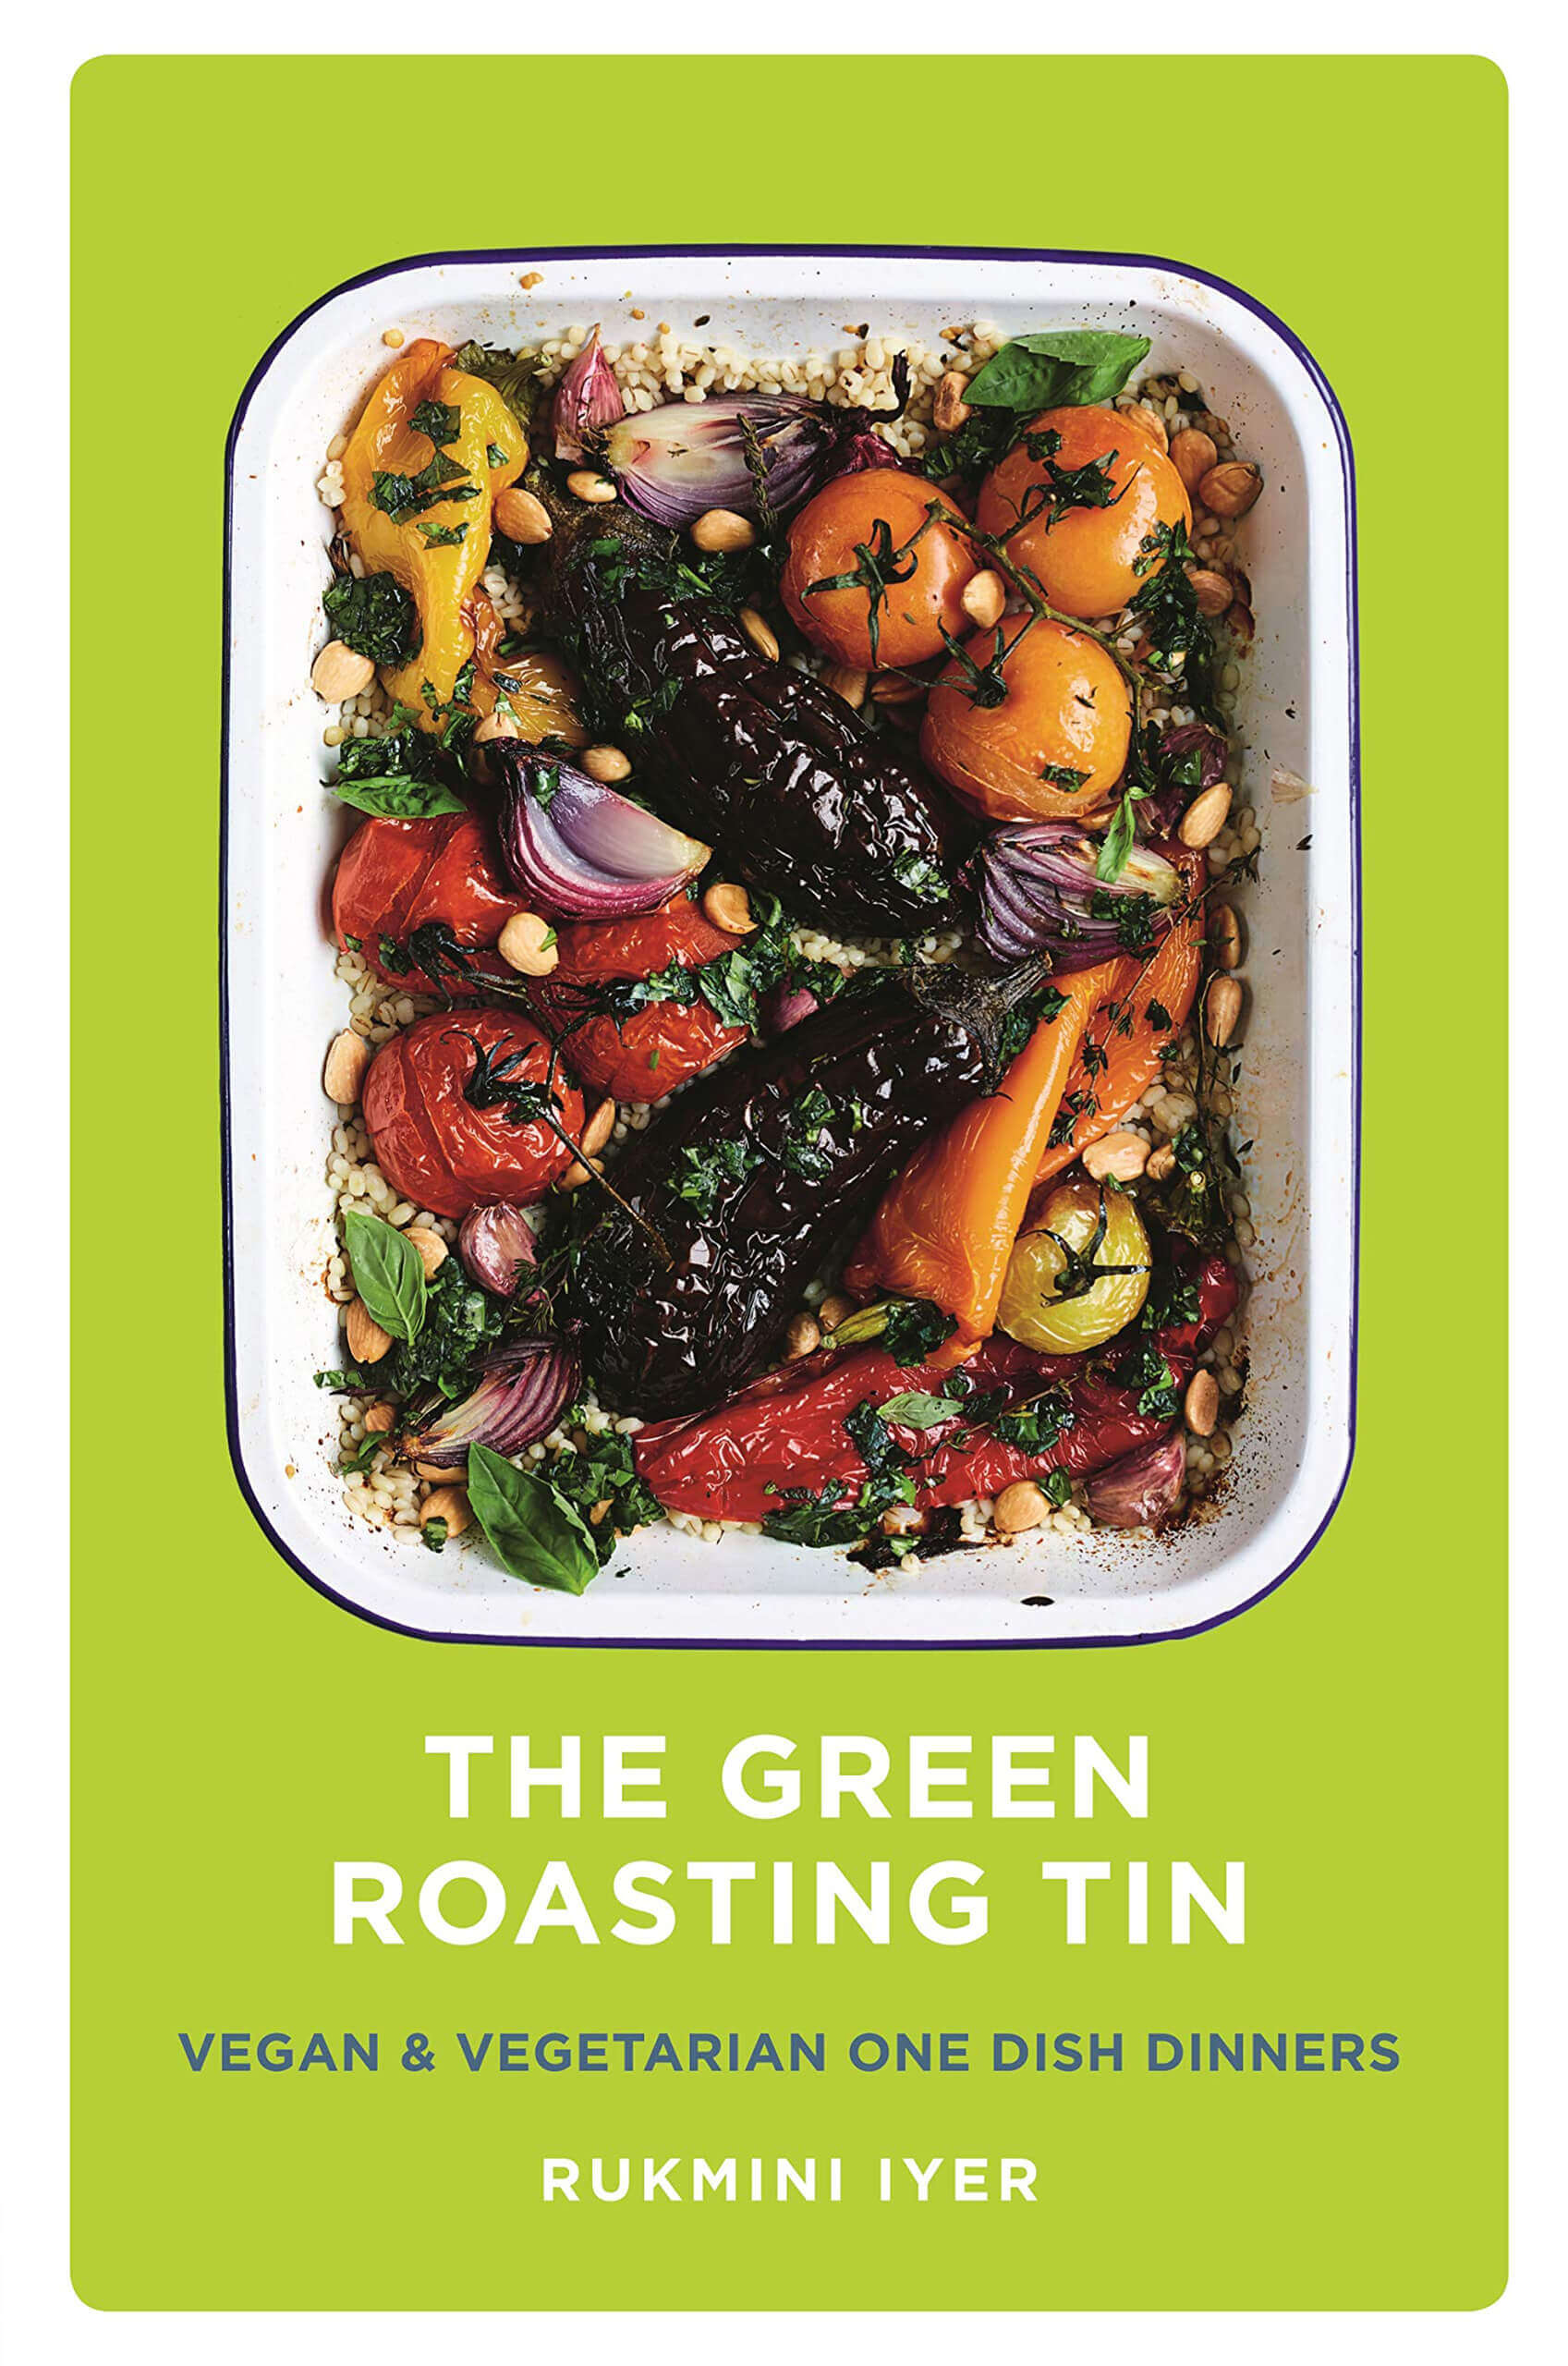 The Green Roasting Tin: Vegan and Vegetarian One Dish Dinners Book by Rukmini Iyer